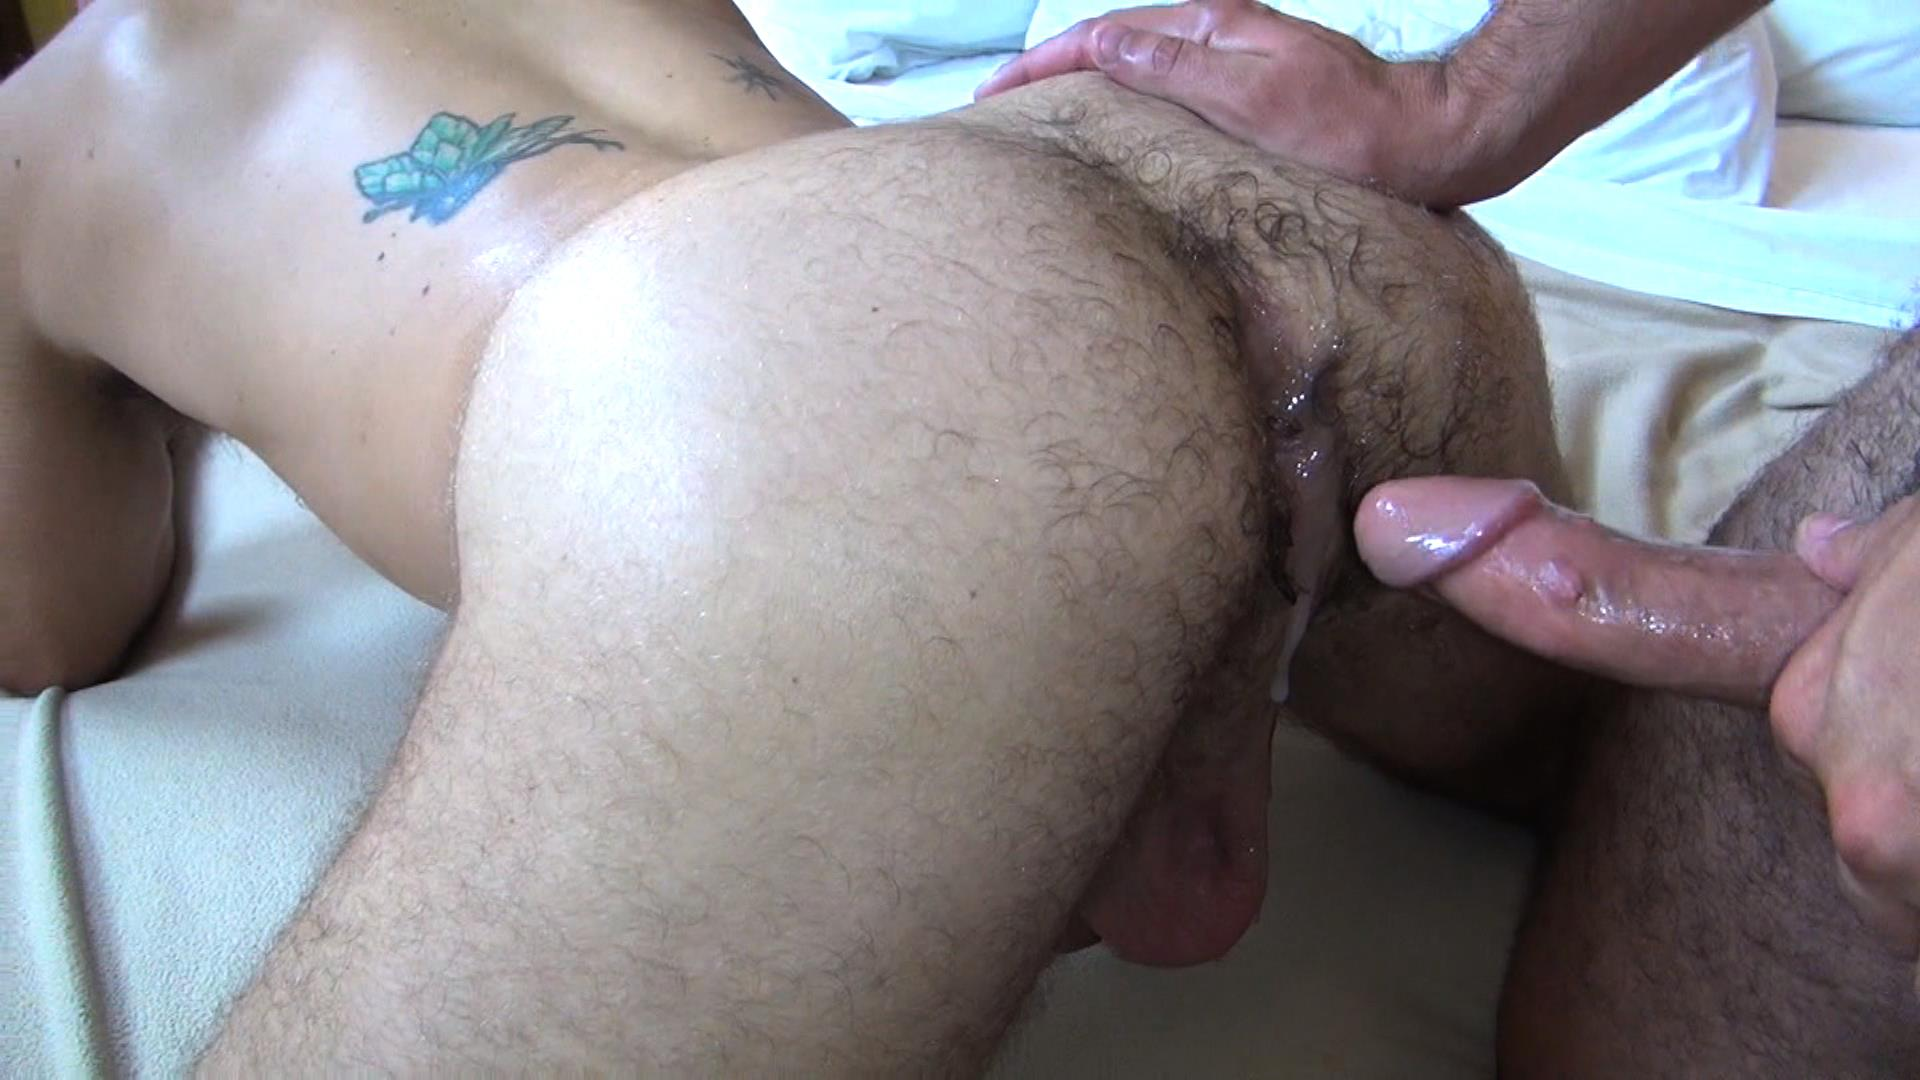 Raw-Fuck-Club-Jon-Shield-and-Cam-Christou-Guys-Fucking-Bareback-Sex-Tape-In-A-Sleazy-Hotel-Amateur-Gay-Porn-7 Jon Shield and Cam Christou Fucking Bareback In A Sleazy Motel